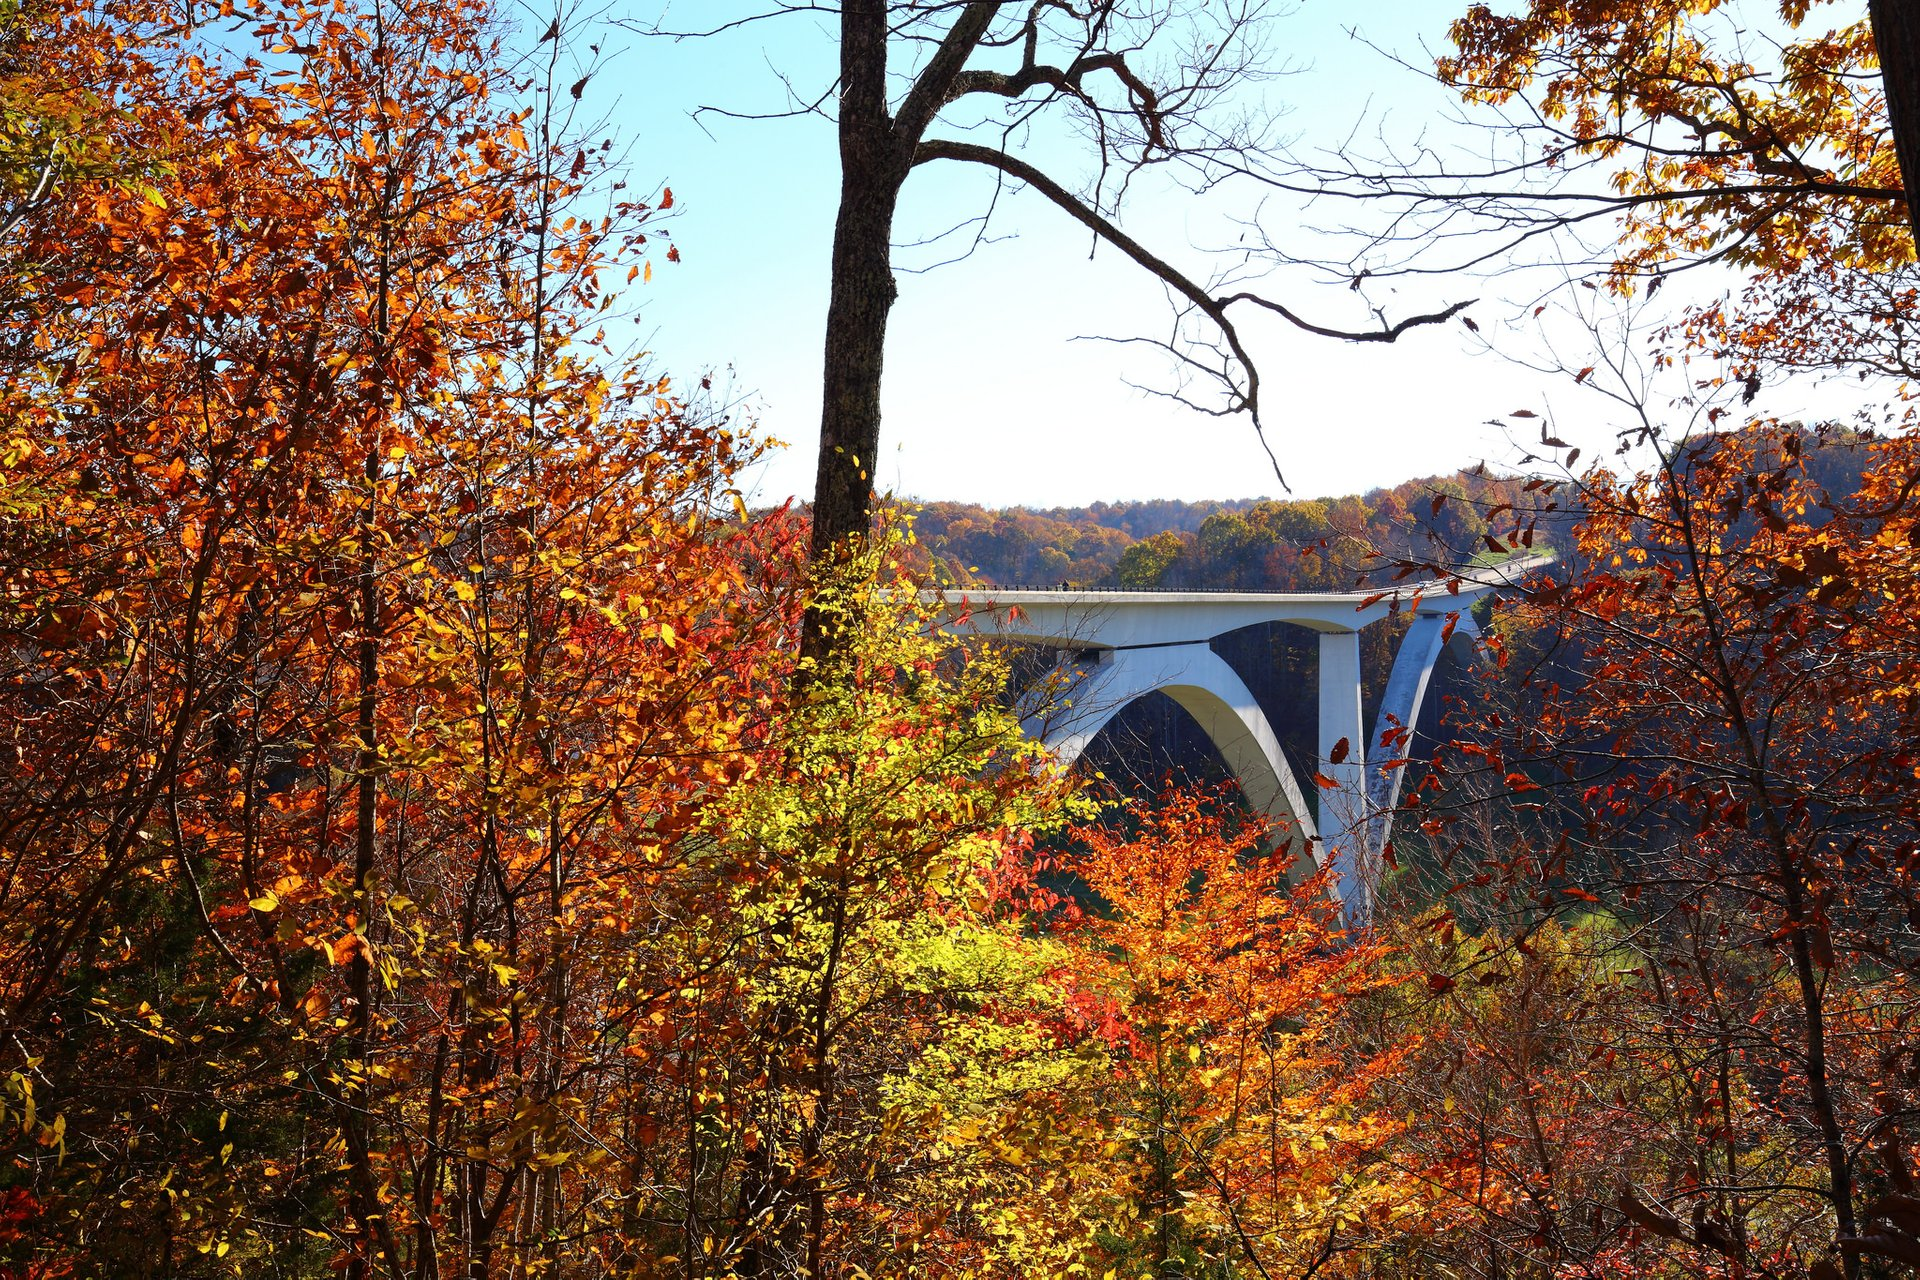 Views of the Natchez Parkway Bridge and it's surrounding in autumn 2019